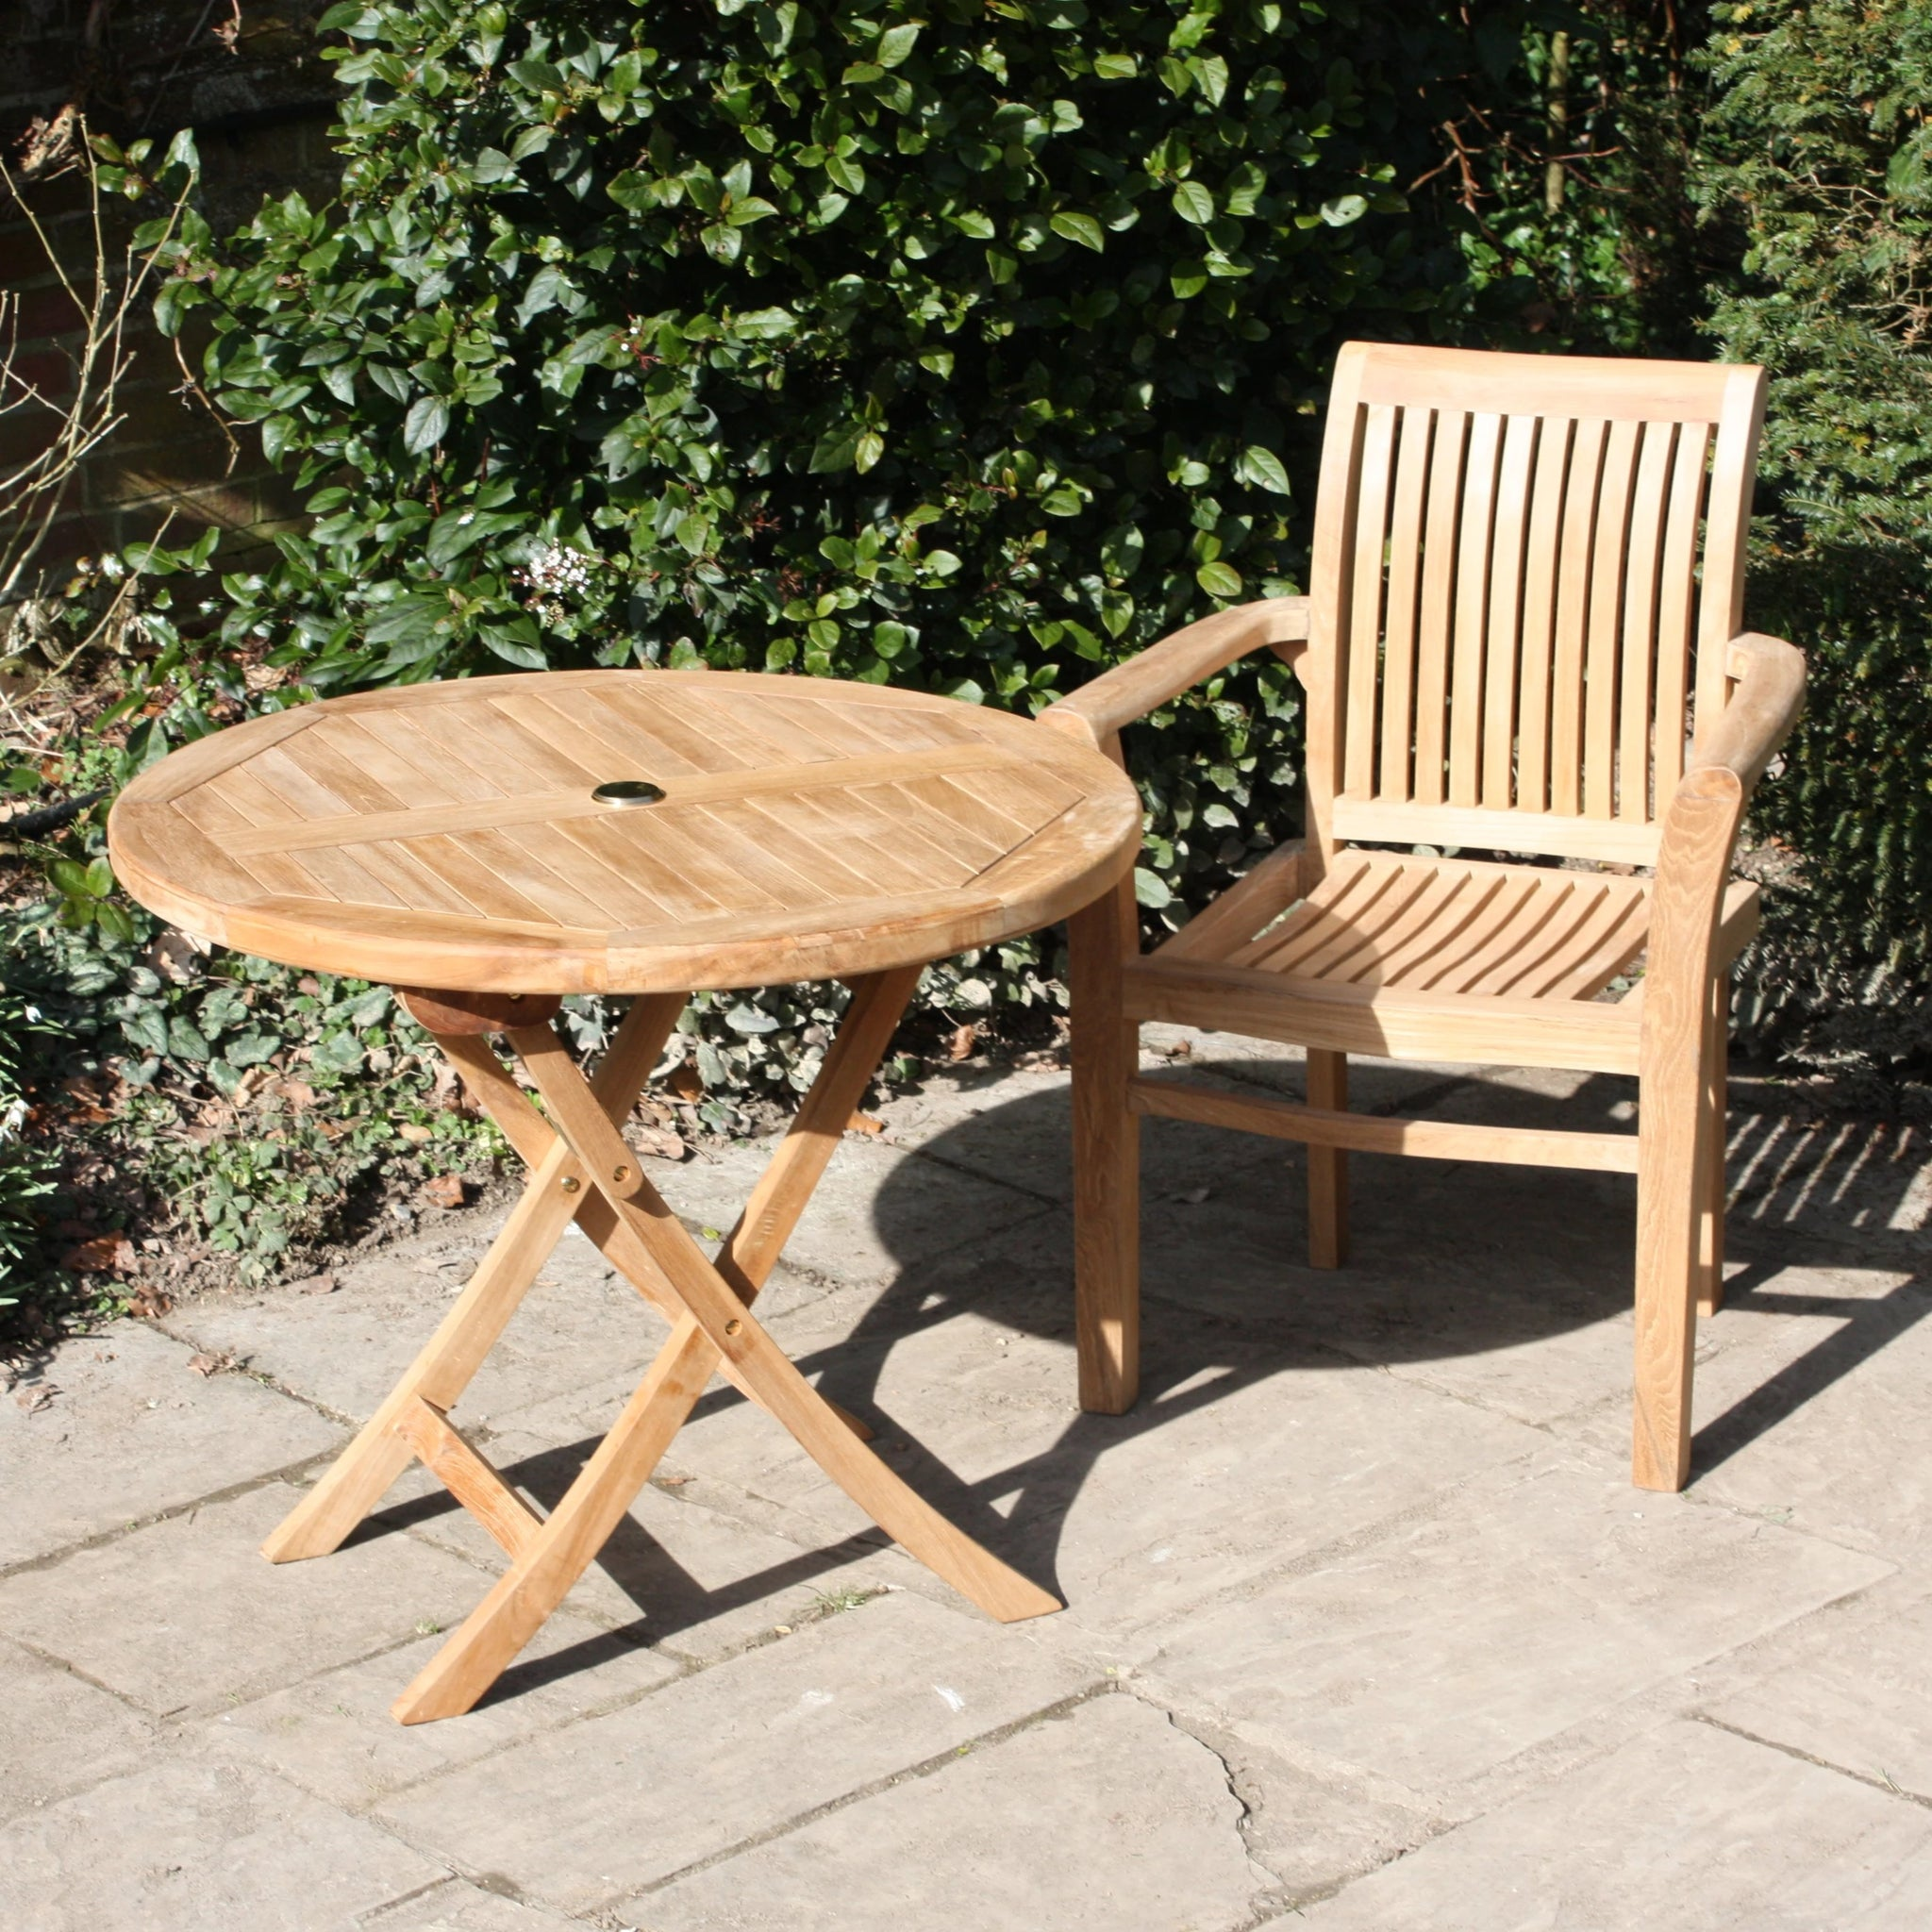 Round Folding Teak Garden Table - available in 2 sizes